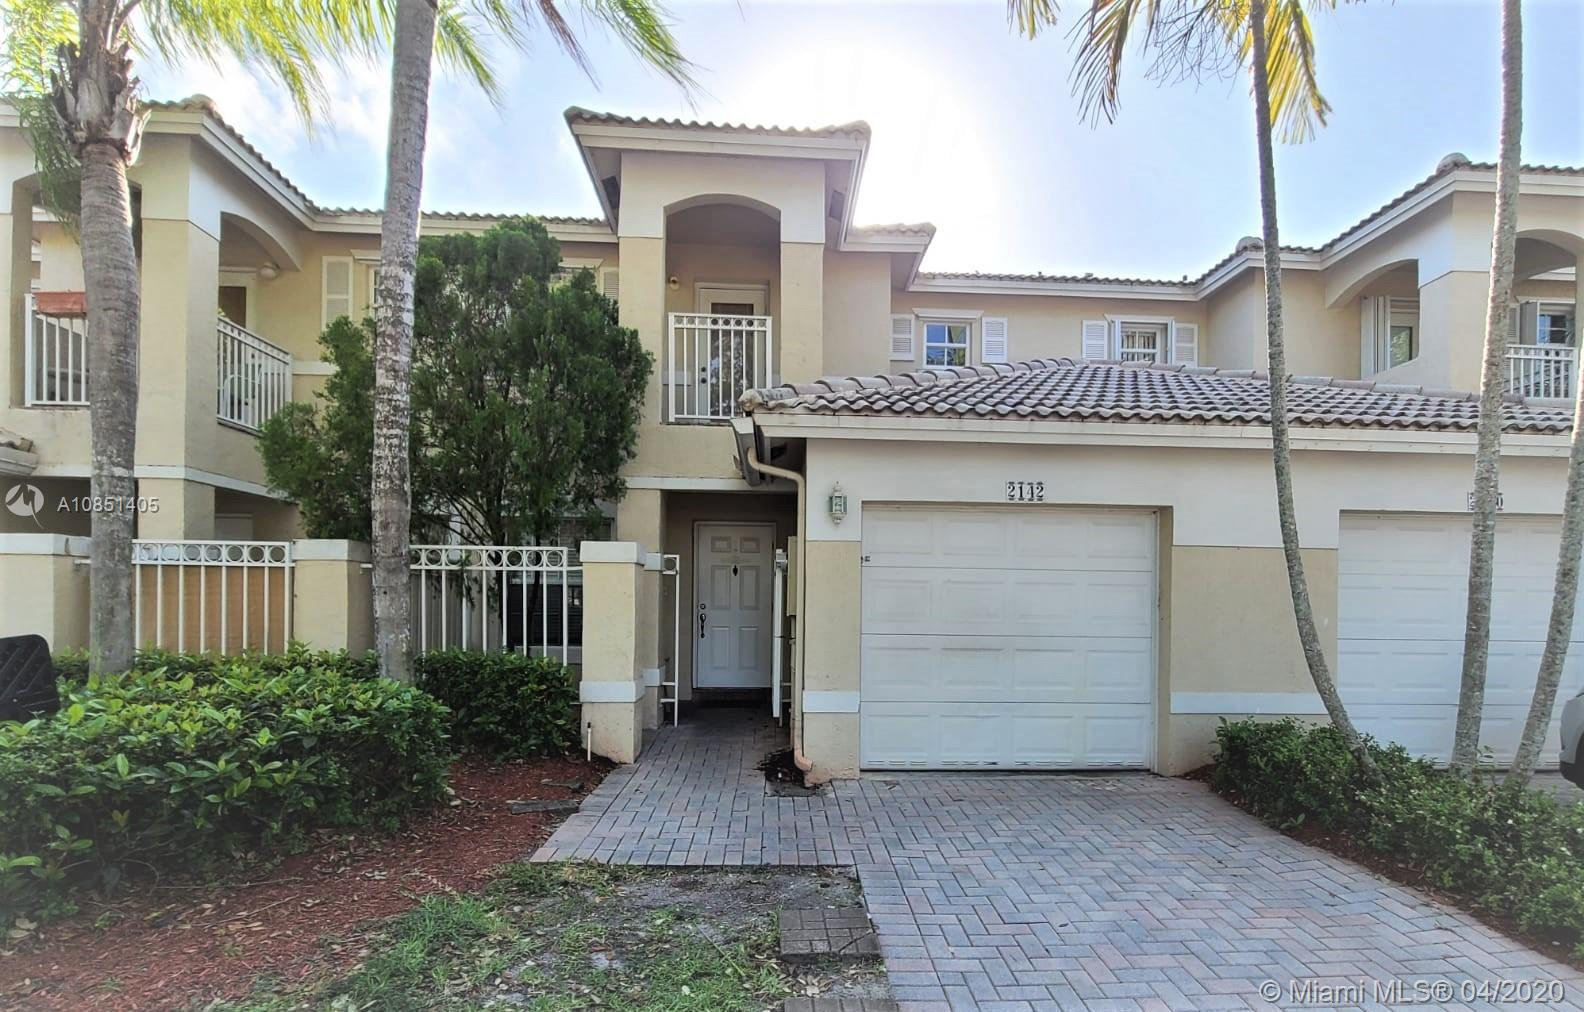 PRICE REDUCED!!!!! OWN THIS GREAT TOWNHOME IN ONE OF THE BEST COMMUNITIES OF PEMBROKE PINES. Live the resort style of Pembroke Isles or make your investment count in an easy to rent property. Three community pools, children playgrounds, tennis and basketball courts, plenty of green space for jogging and walking in a quiet environment. This well maintained townhome features 3 bedrooms, 2 1/2 baths, one car garage (converted to a 4th bedroom, can easily be used as a garage again). One car space in driveway and plenty of additional parking spaces available in front of the property. MUST SEE!!